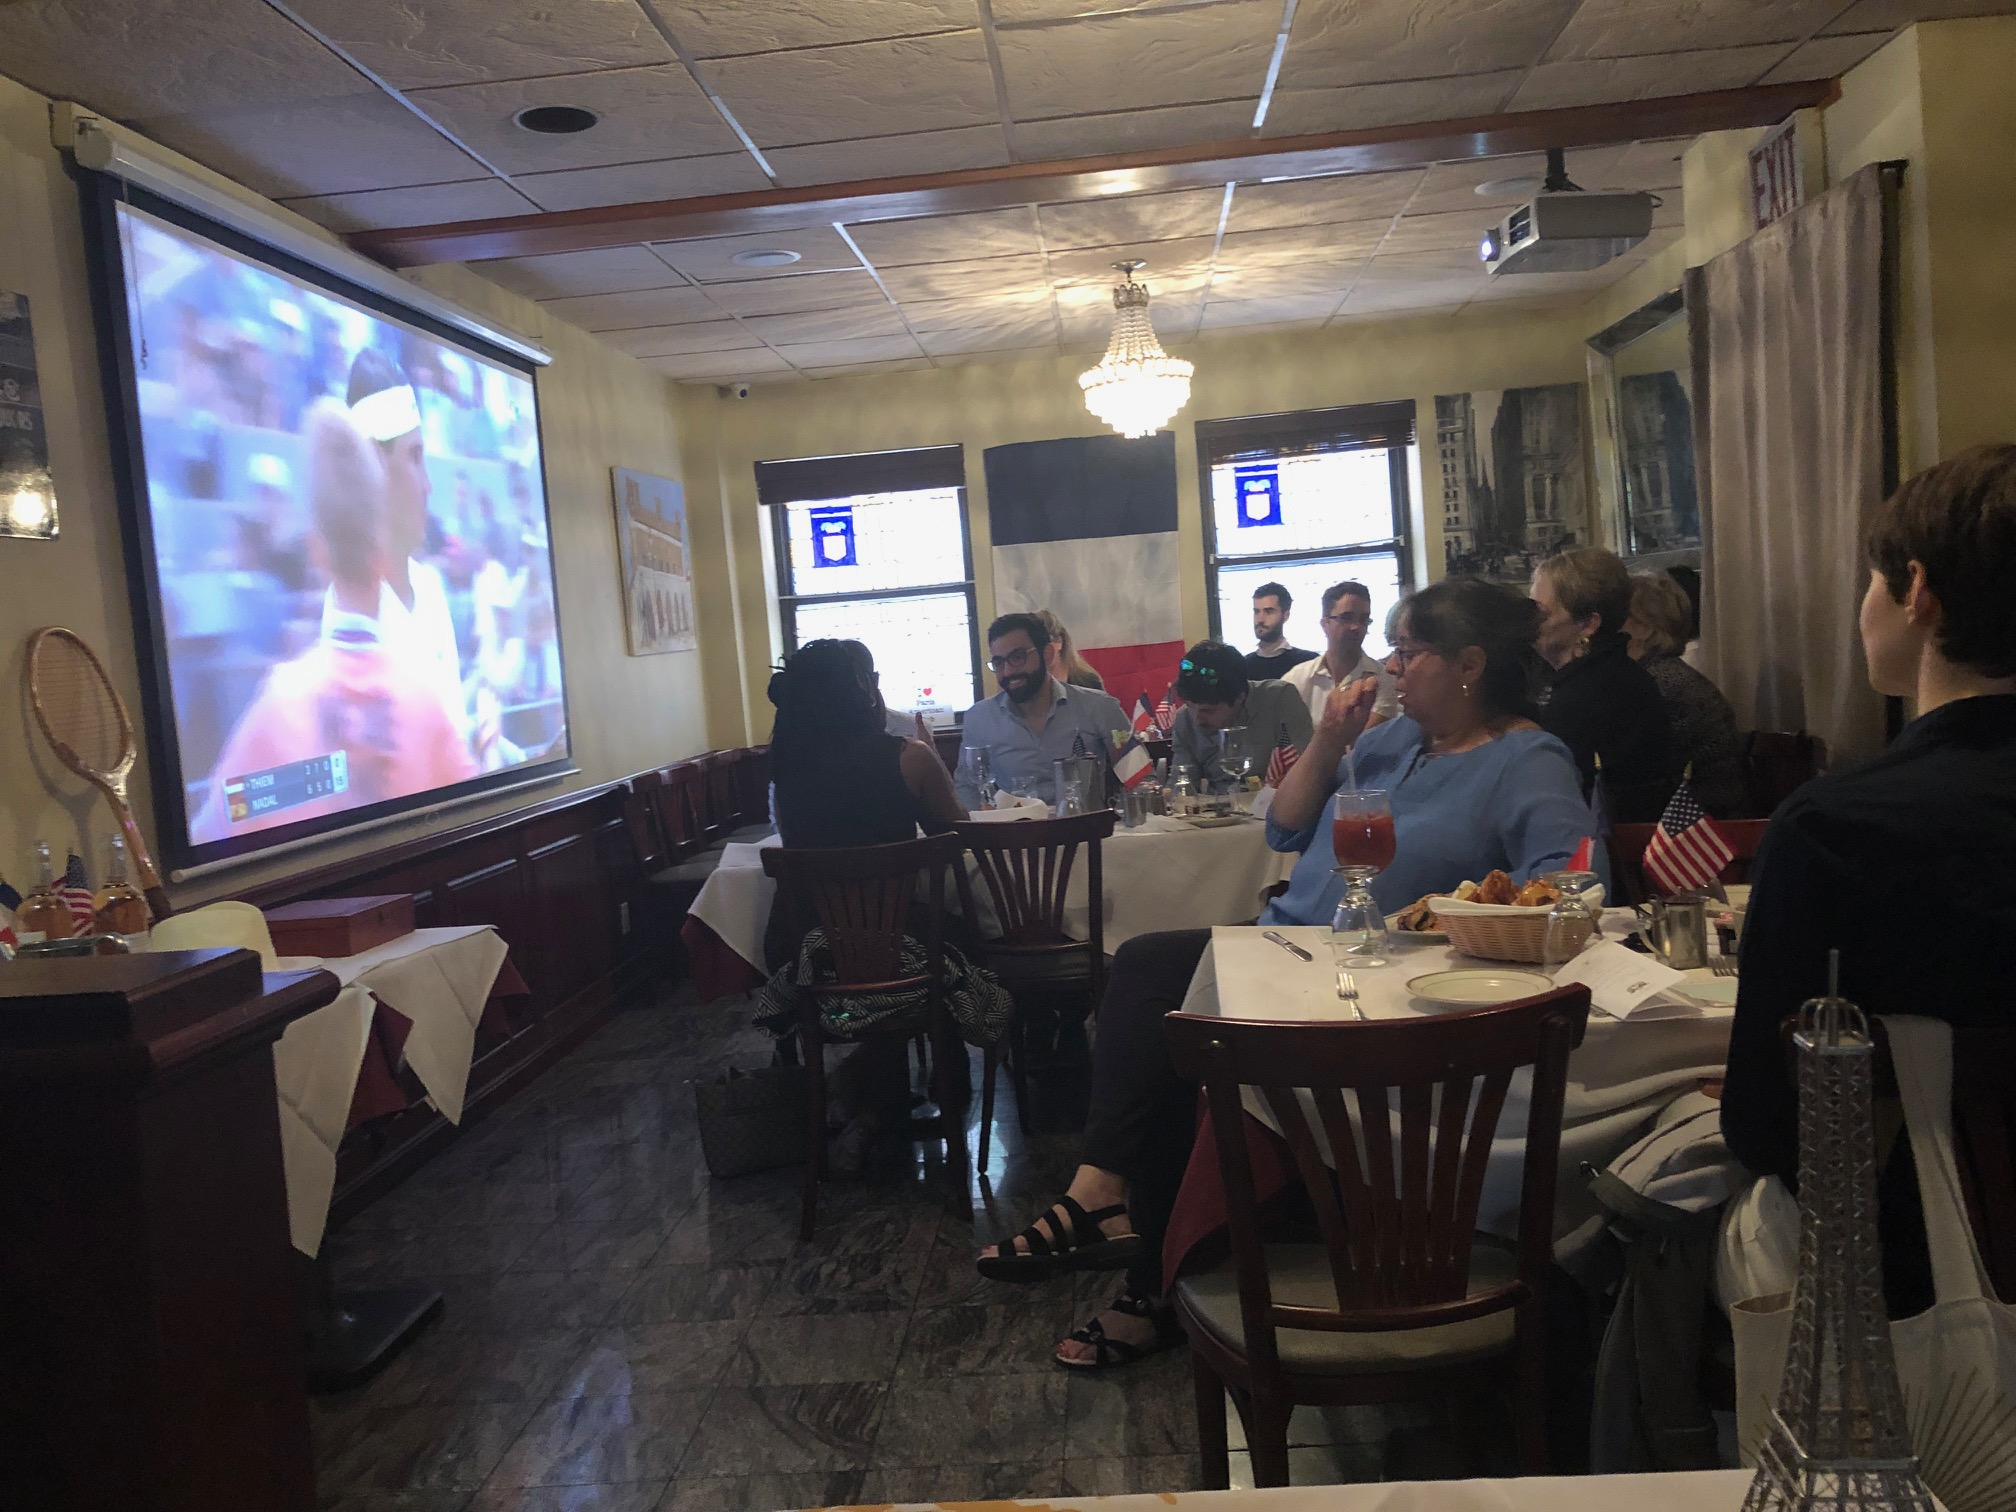 June 9, 2019 Roland Garros Brunch